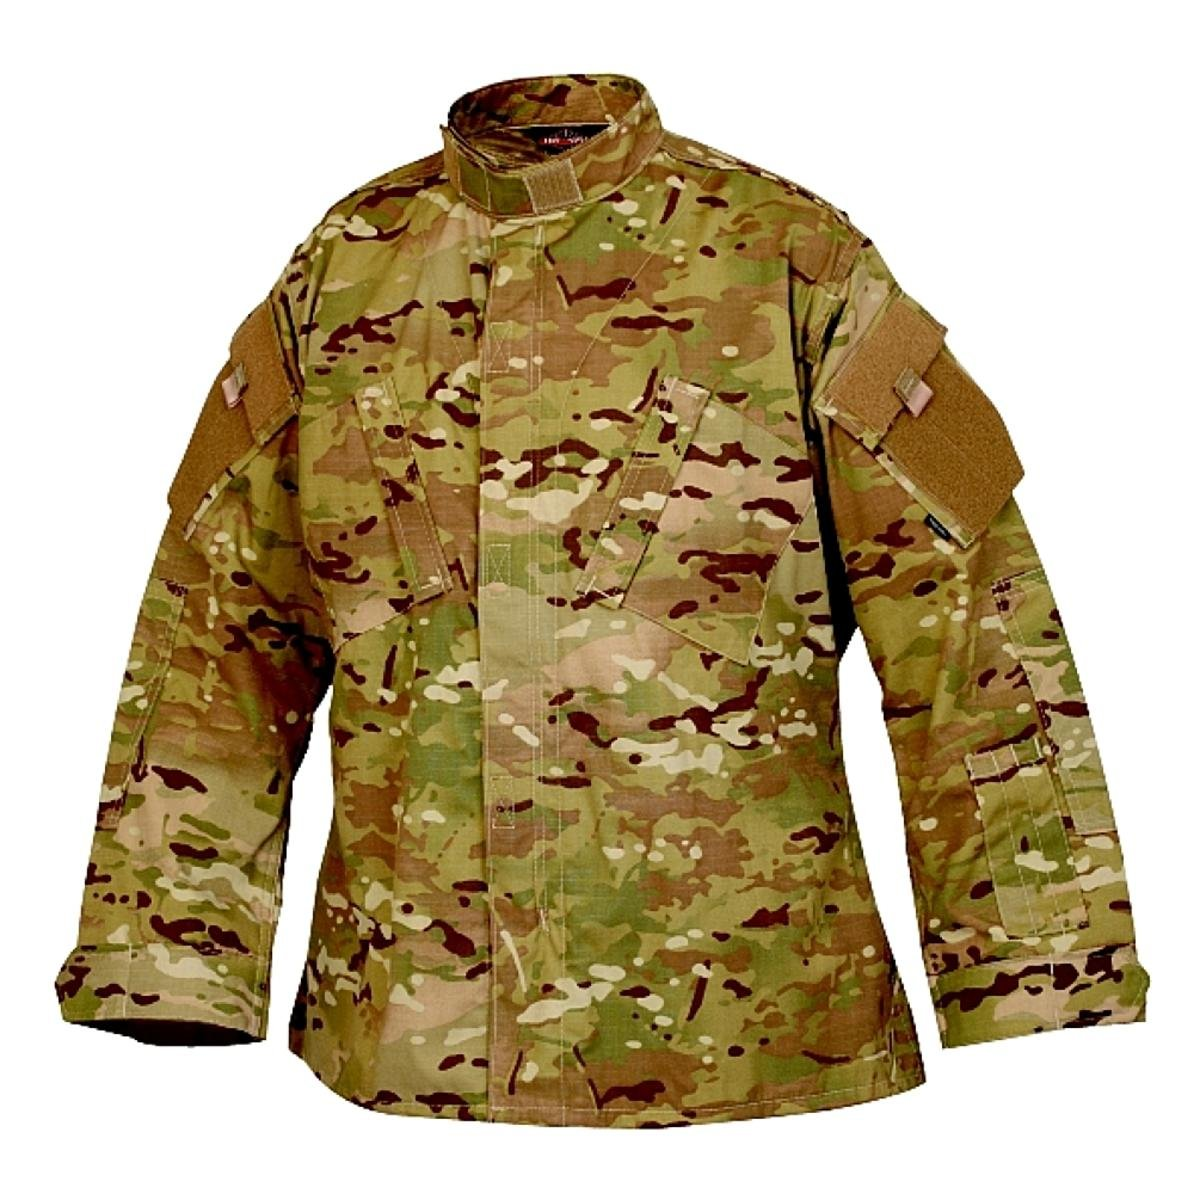 Tru-Spec 1298 Tactical Response Uniform Shirt, MultiCam Atlanco TS1298